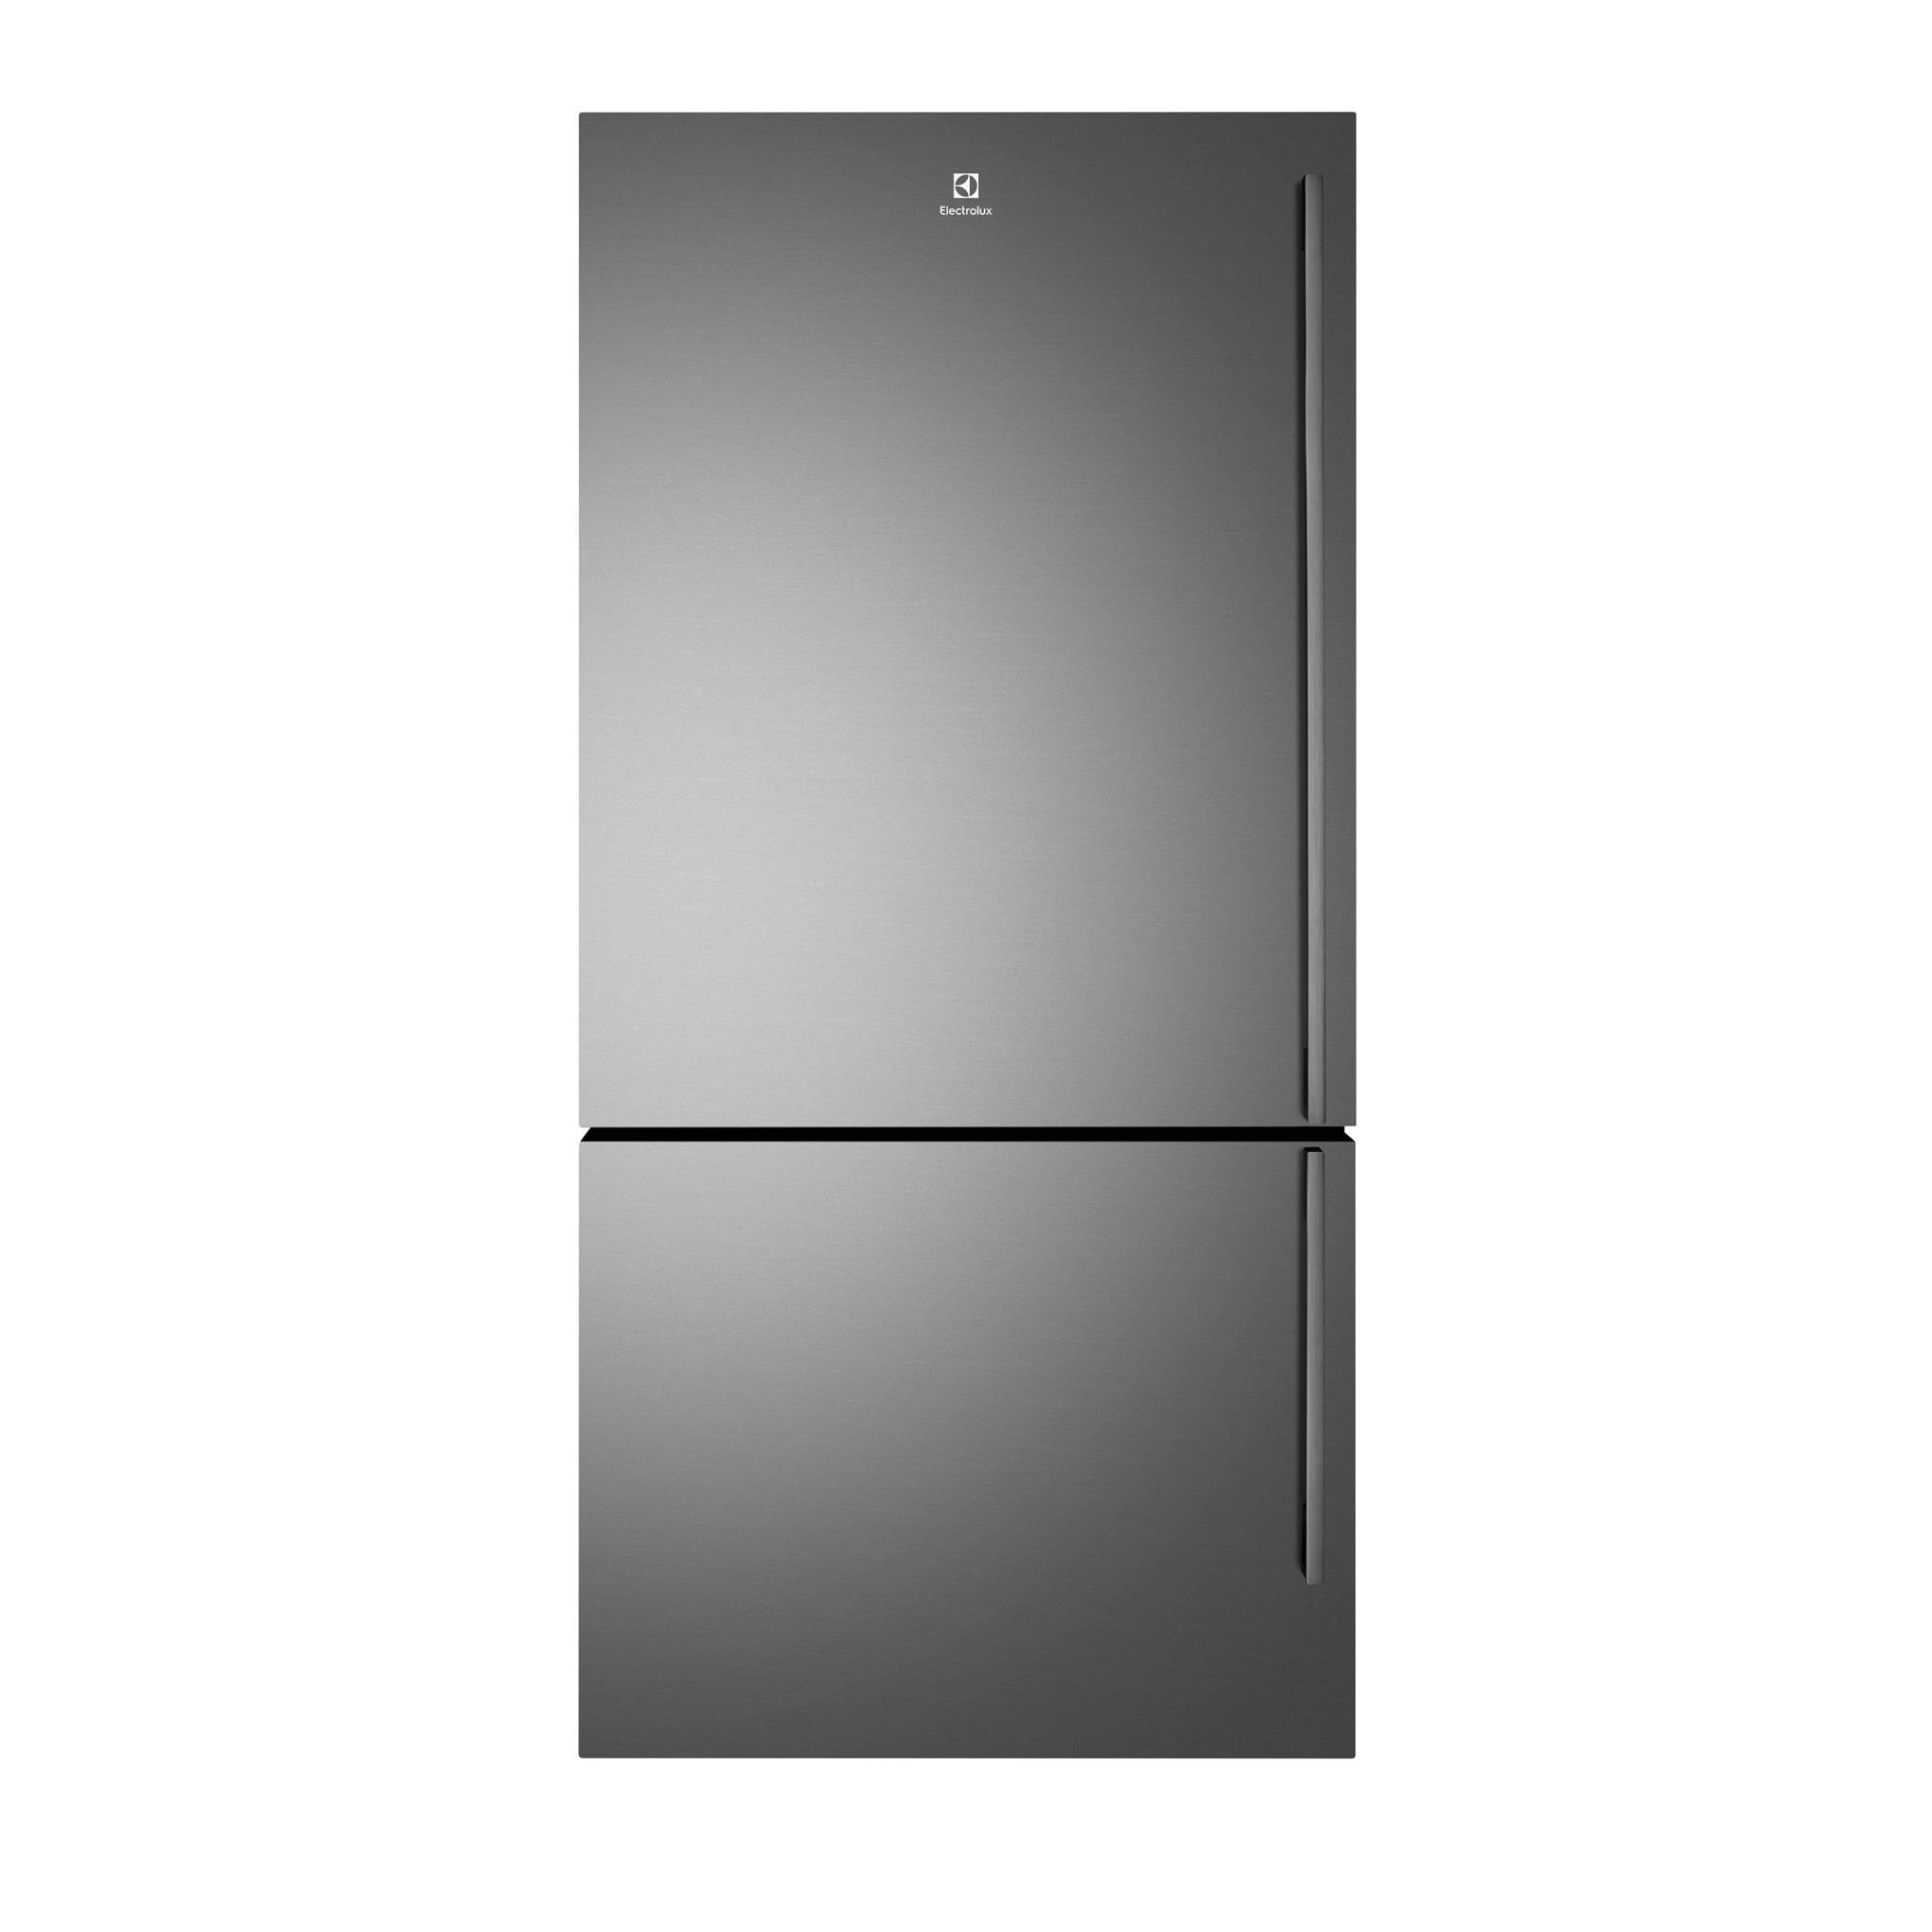 Electrolux EBE5307BB 530L 2 Door Bottom Mount Fridge (Dark S/Steel) [left]